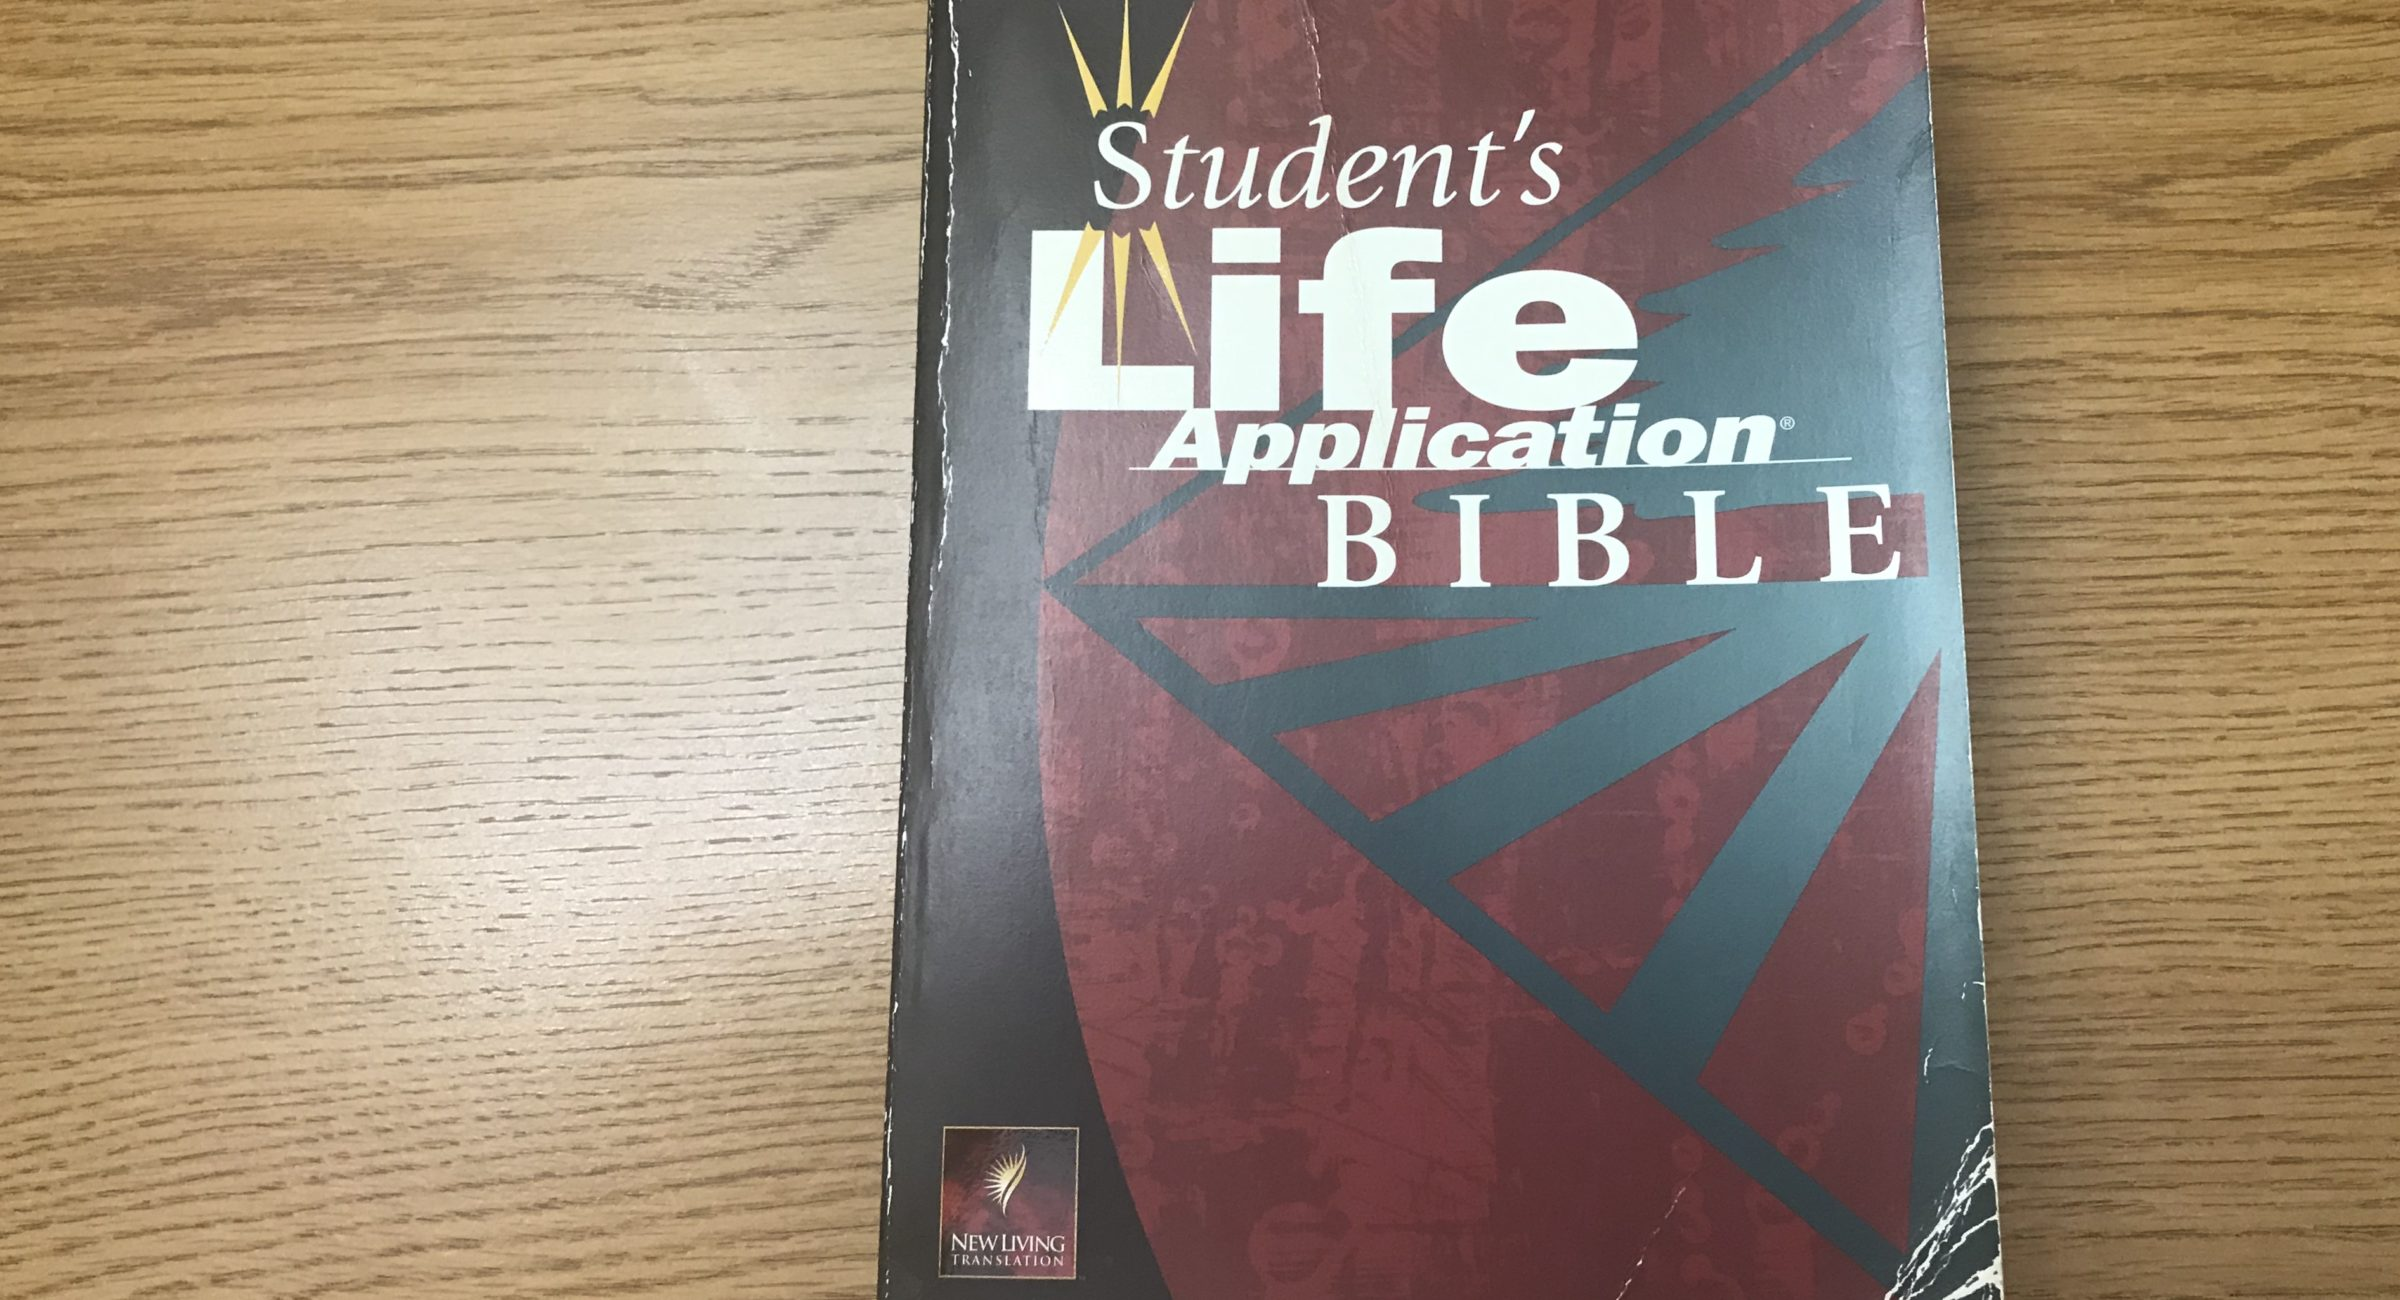 Student's Life Applicable Study Bible